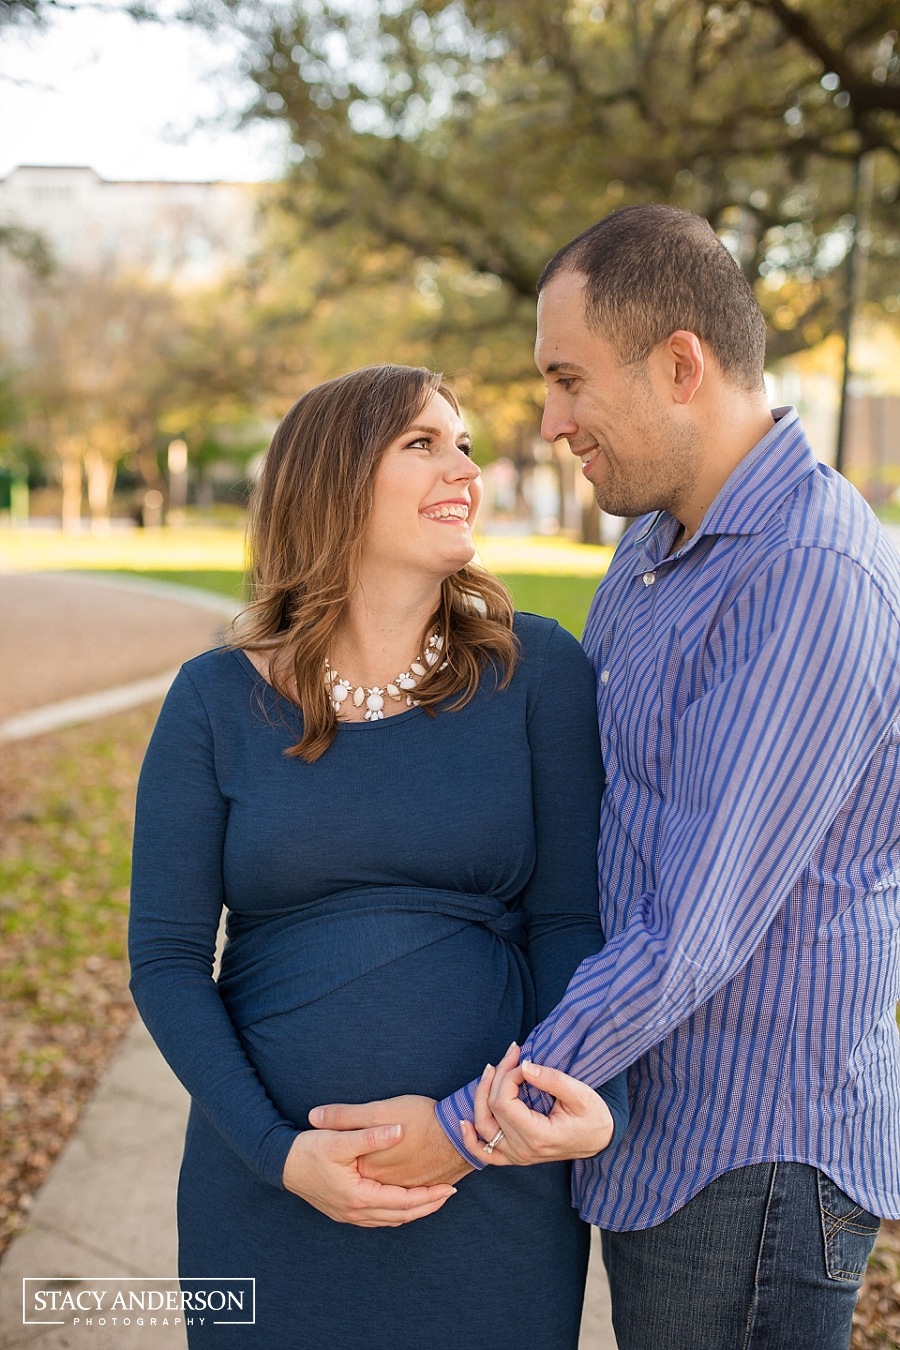 Stacy Anderson Photography Houston Maternity Photographer_1189